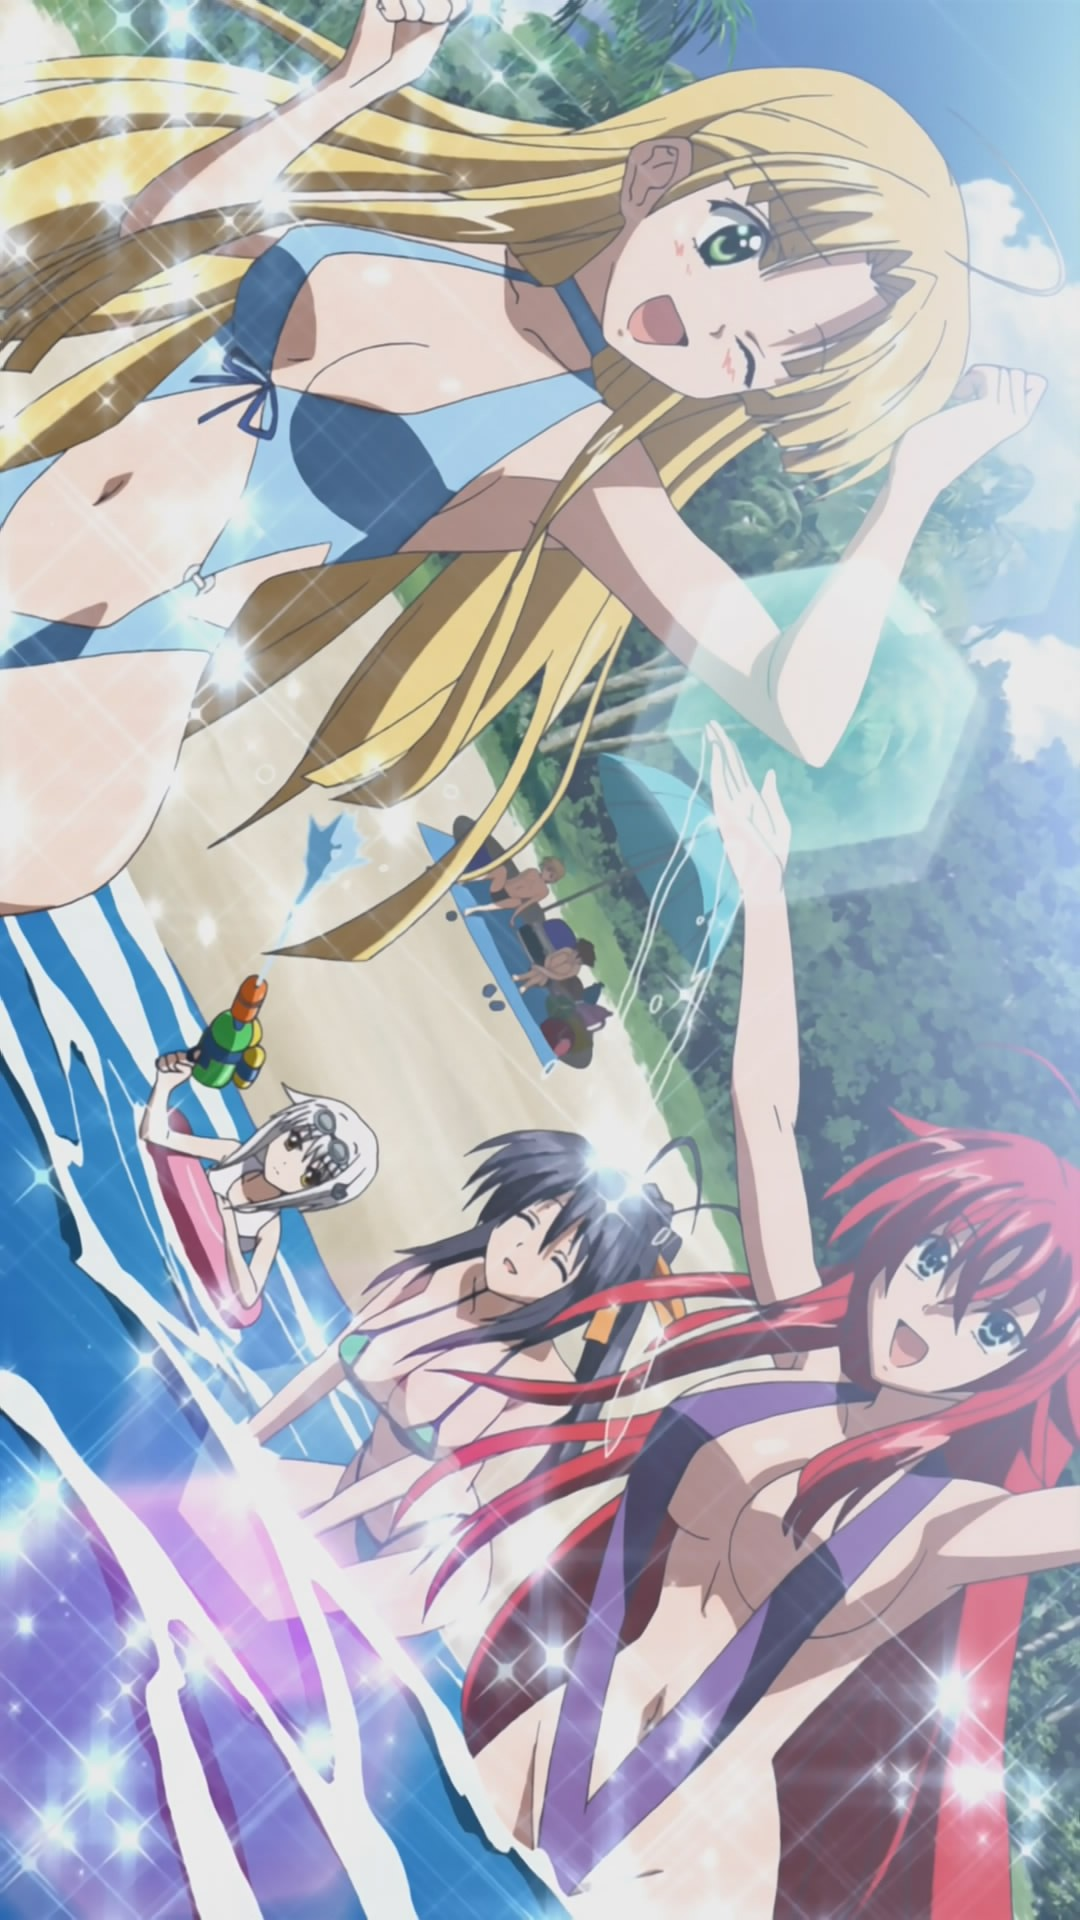 Highschool dxd 11 - 5 5